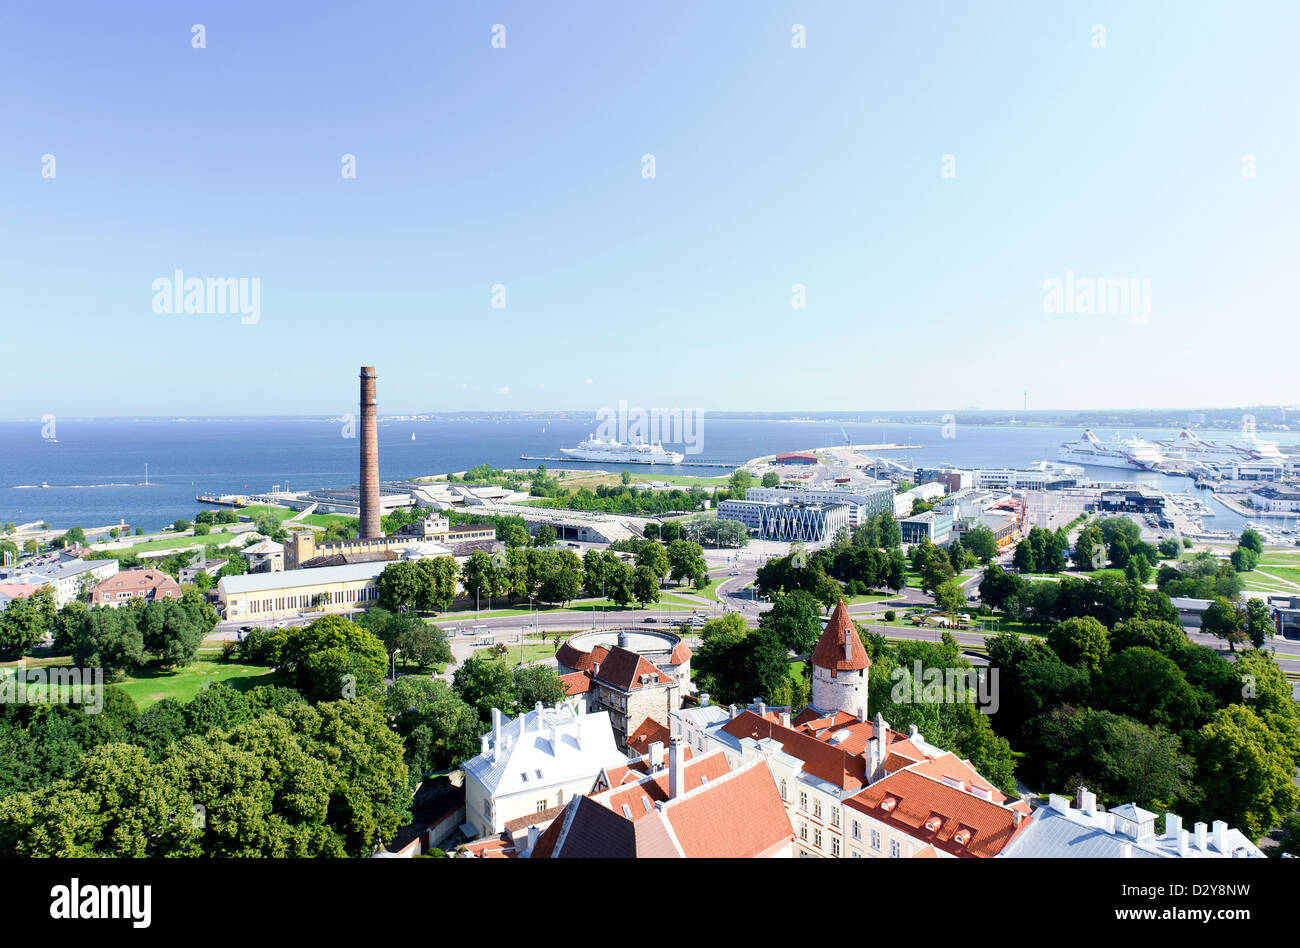 View of the old town (Tallinn, Estonia) - Stock Image